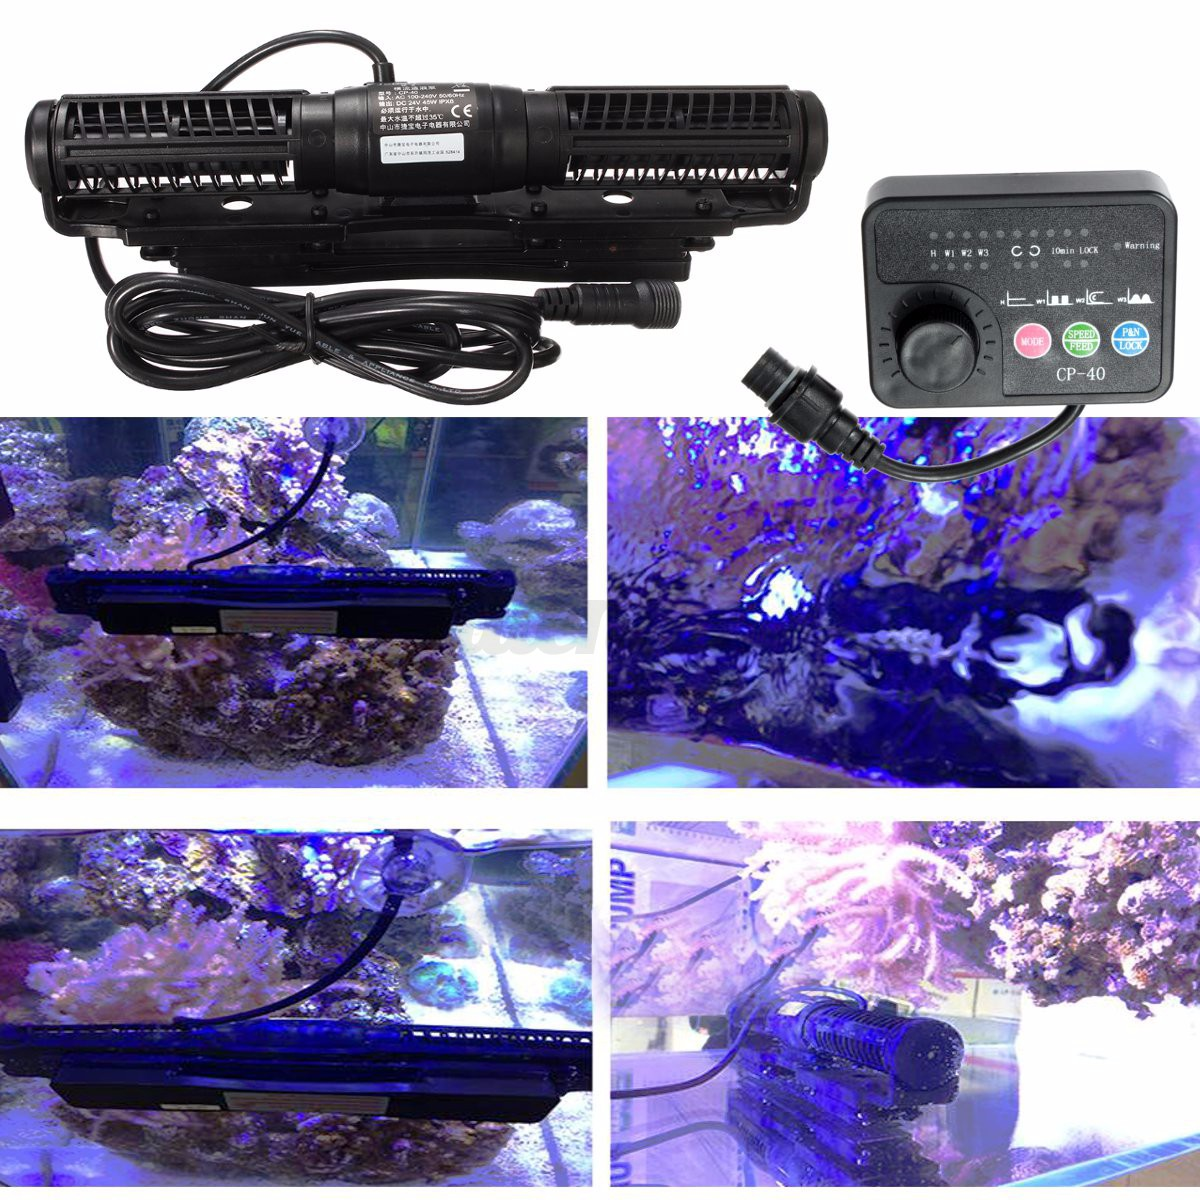 Jebao jecod cp 40 aquarium fish tank reef cross flow pump for Fish tank wave maker